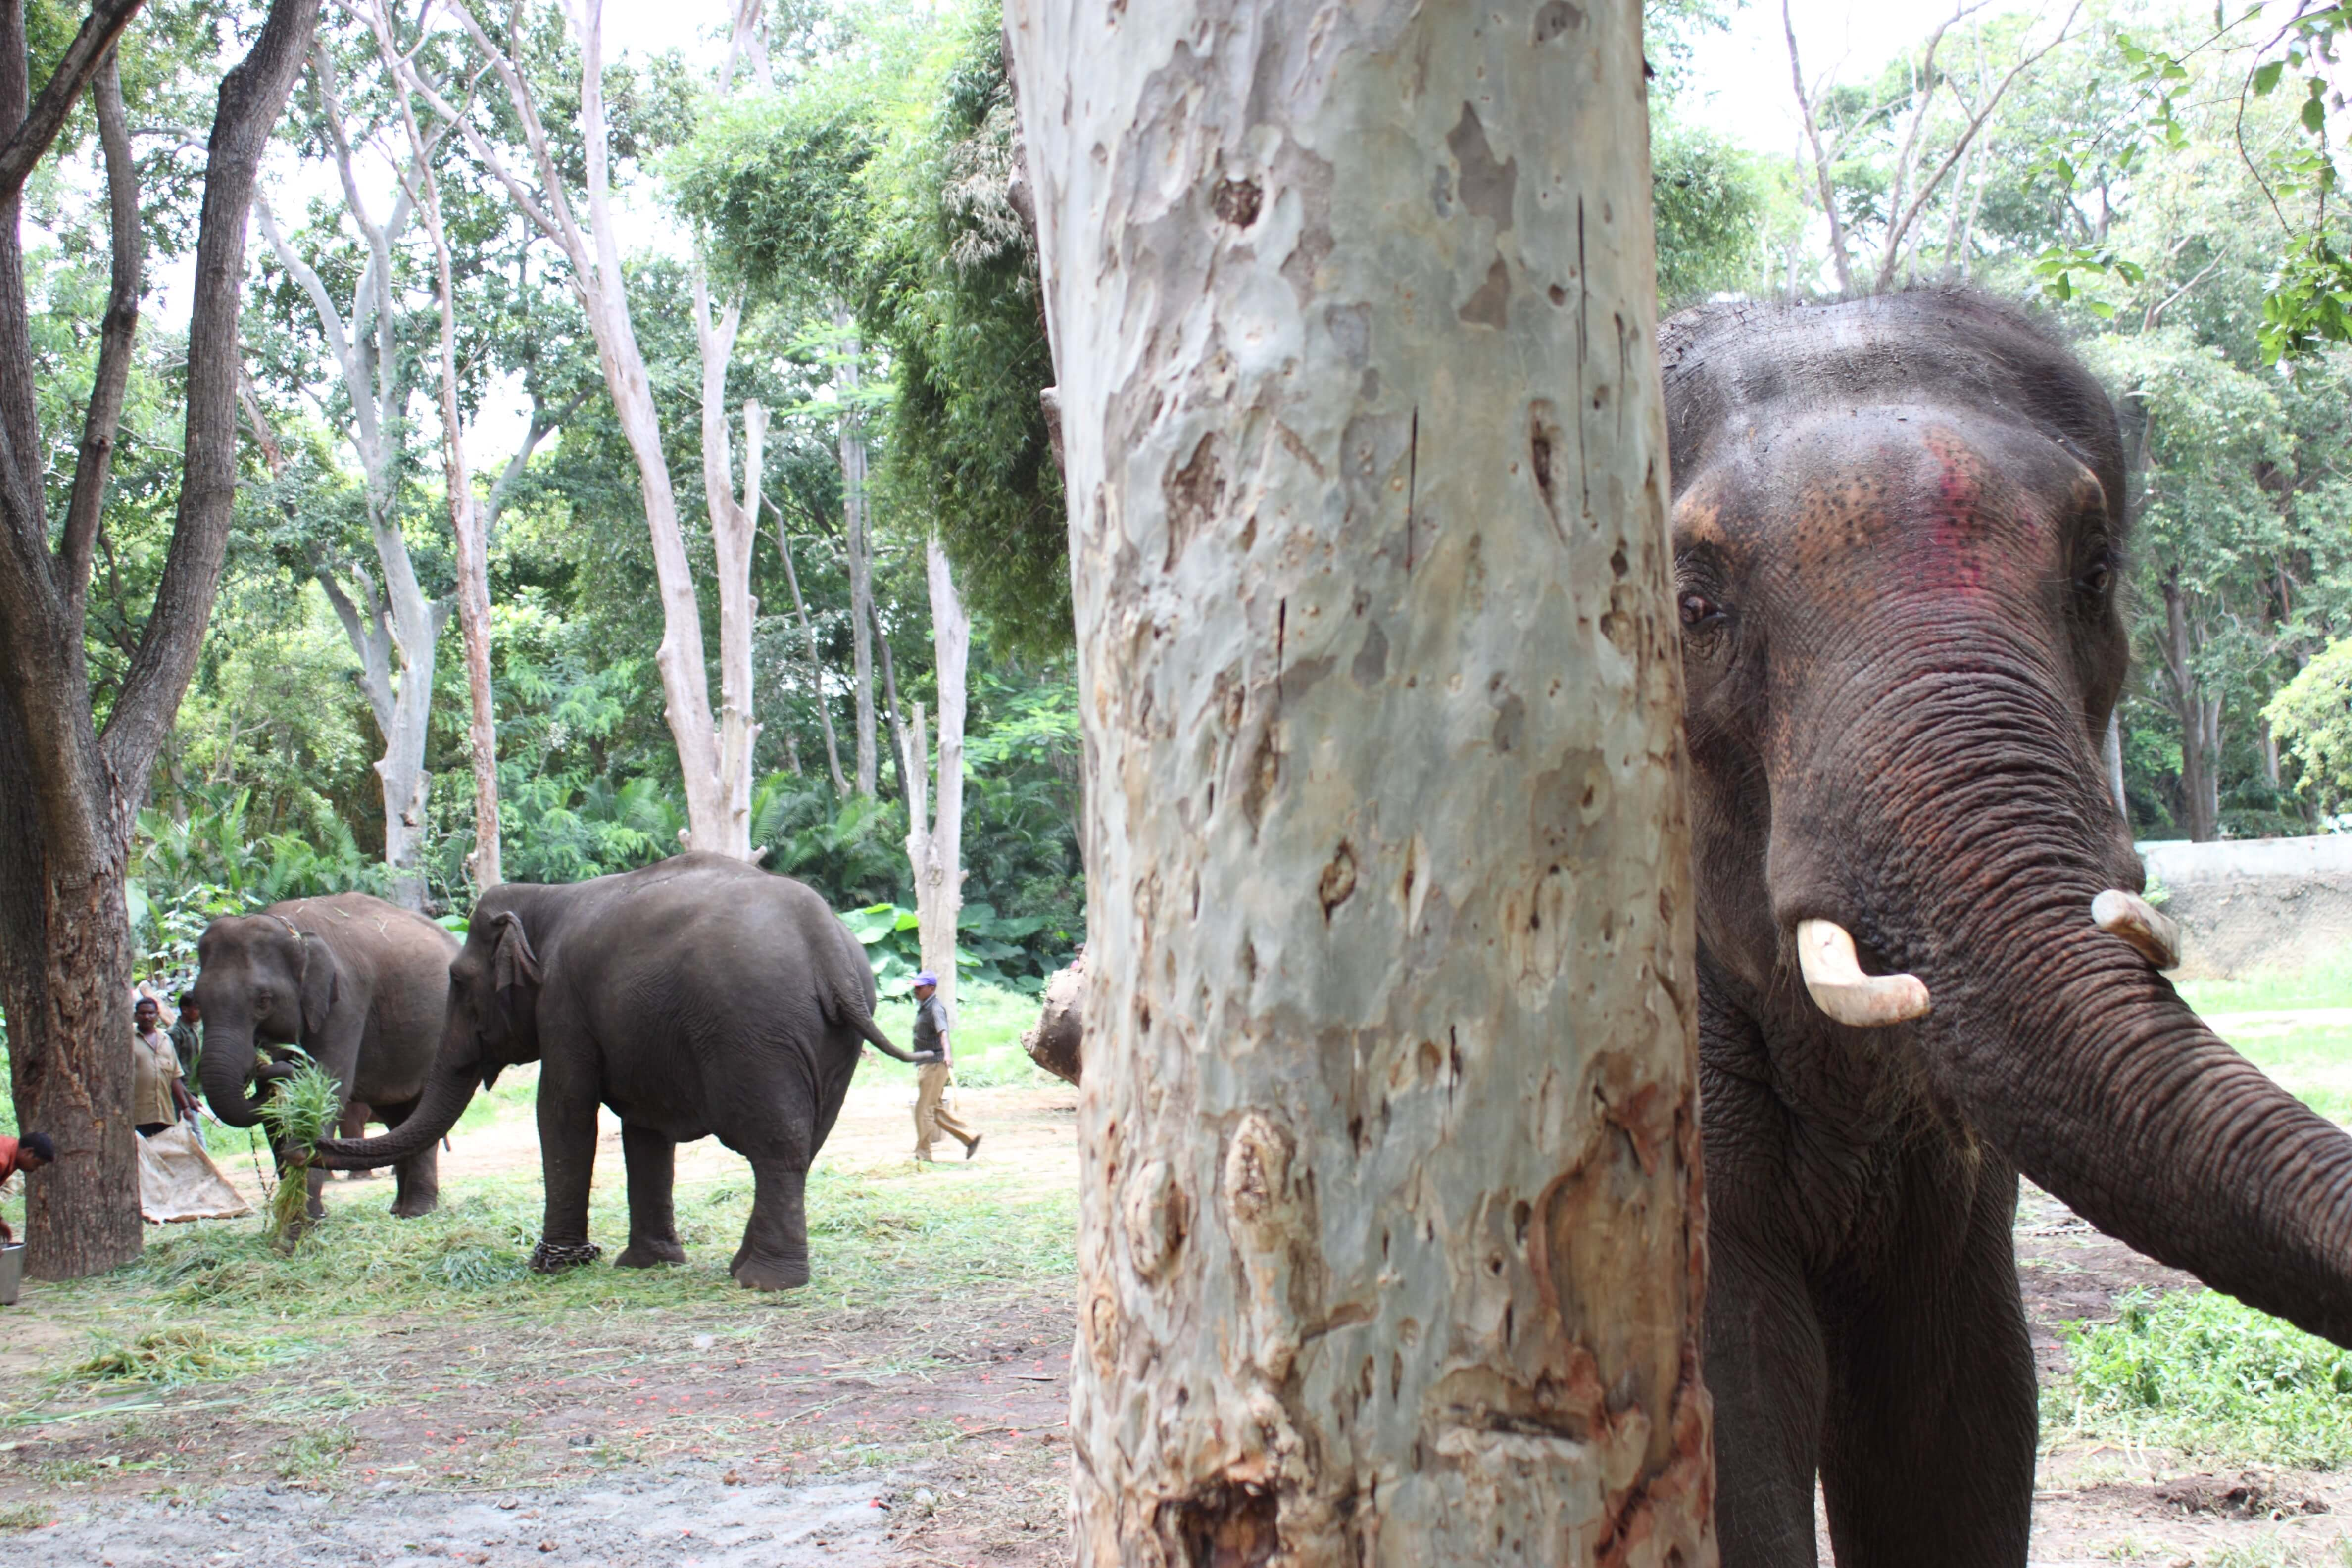 Some of Sunder's new family are being fed nearby so that he can get used to seeing them. Although the elephants are generally permitted to walk around on their own, they may be loosely restrained during feeding, when the mahouts need to keep them together (or separate). However, park officials have promised to fence the massive perimeter so that they may phase out such restraint.